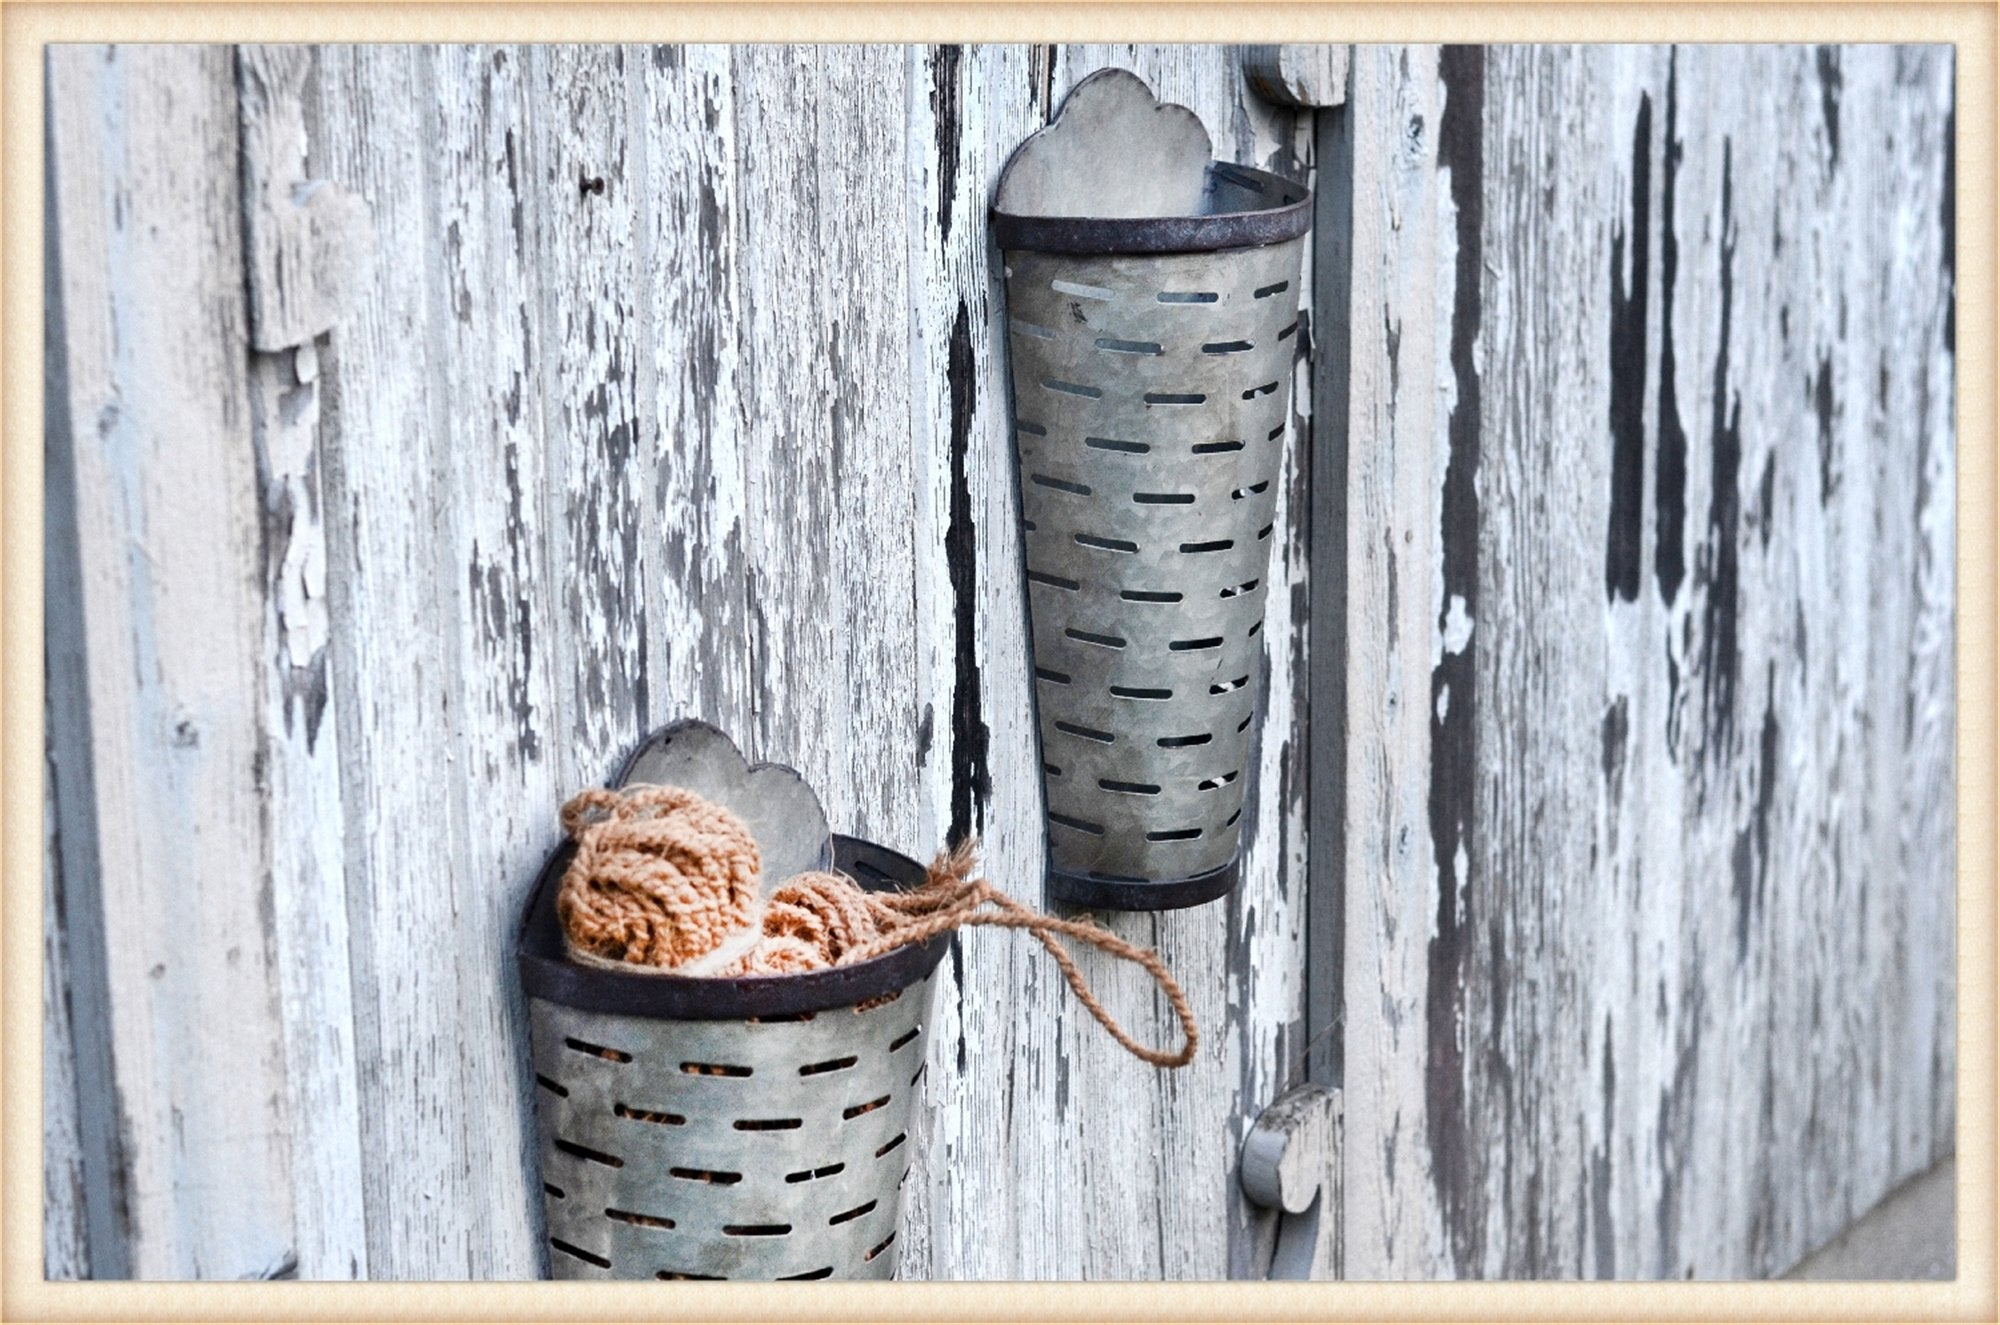 Tall Olive Wall Buckets S/2